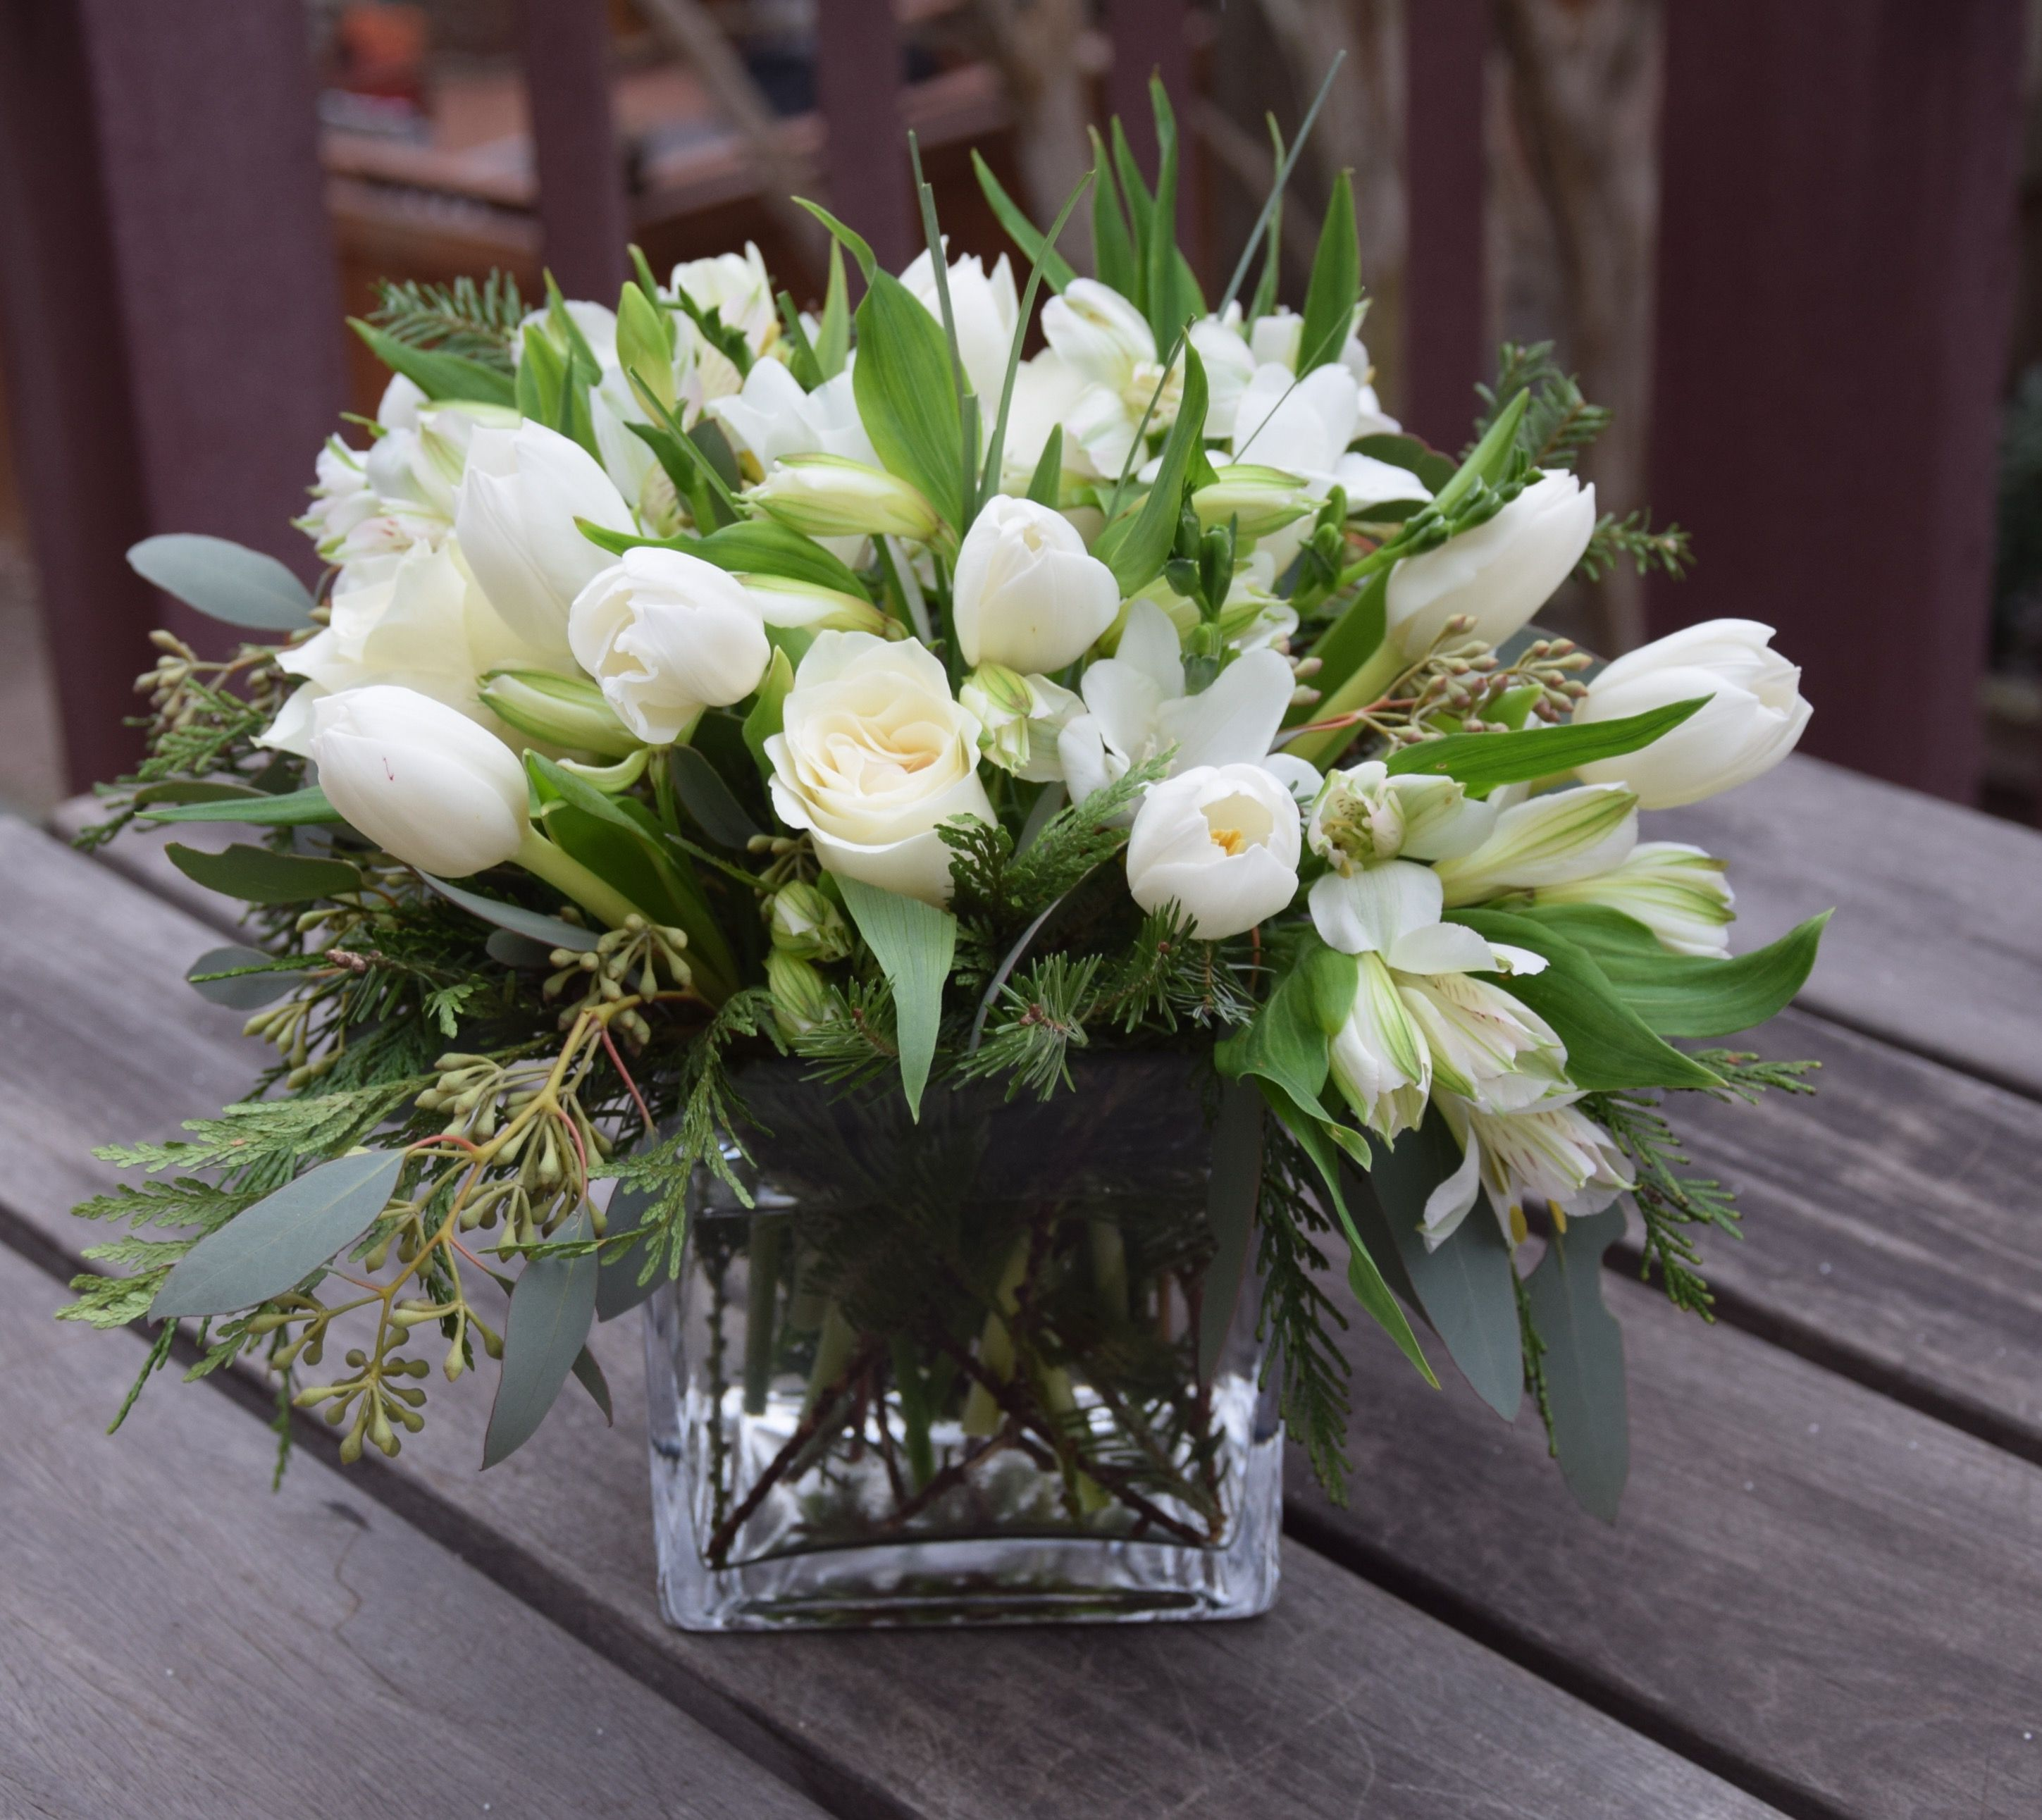 Flower Arrangement In A Glass Vase With White Flowers And Greens Matrimonio